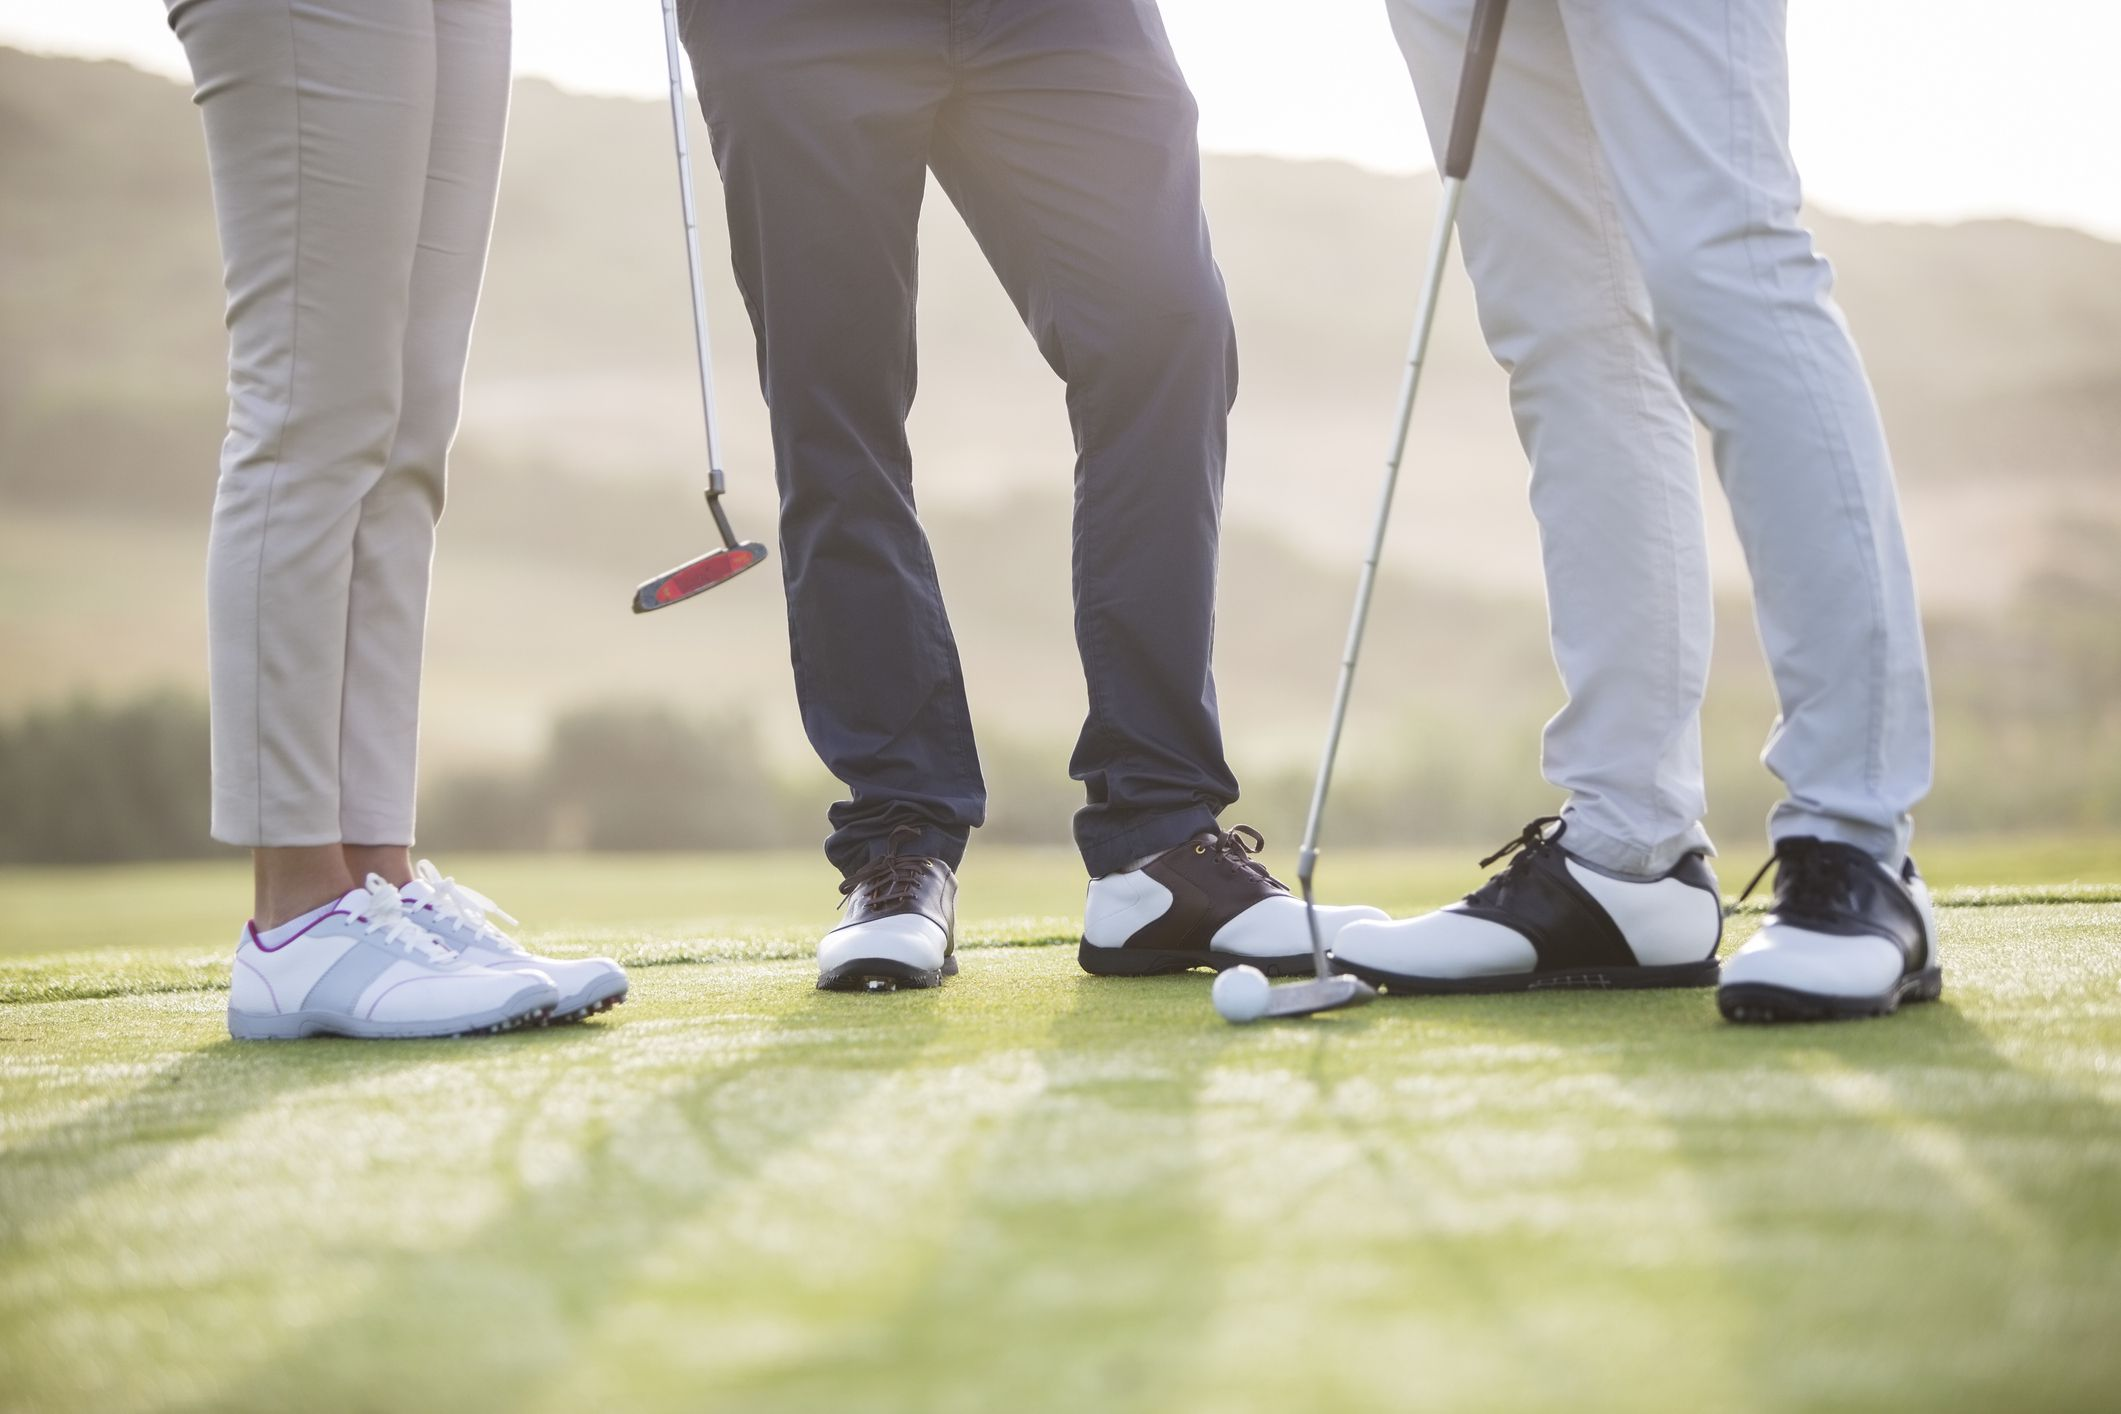 e9766f96ee8 The 8 Best Golf Shoes of 2019